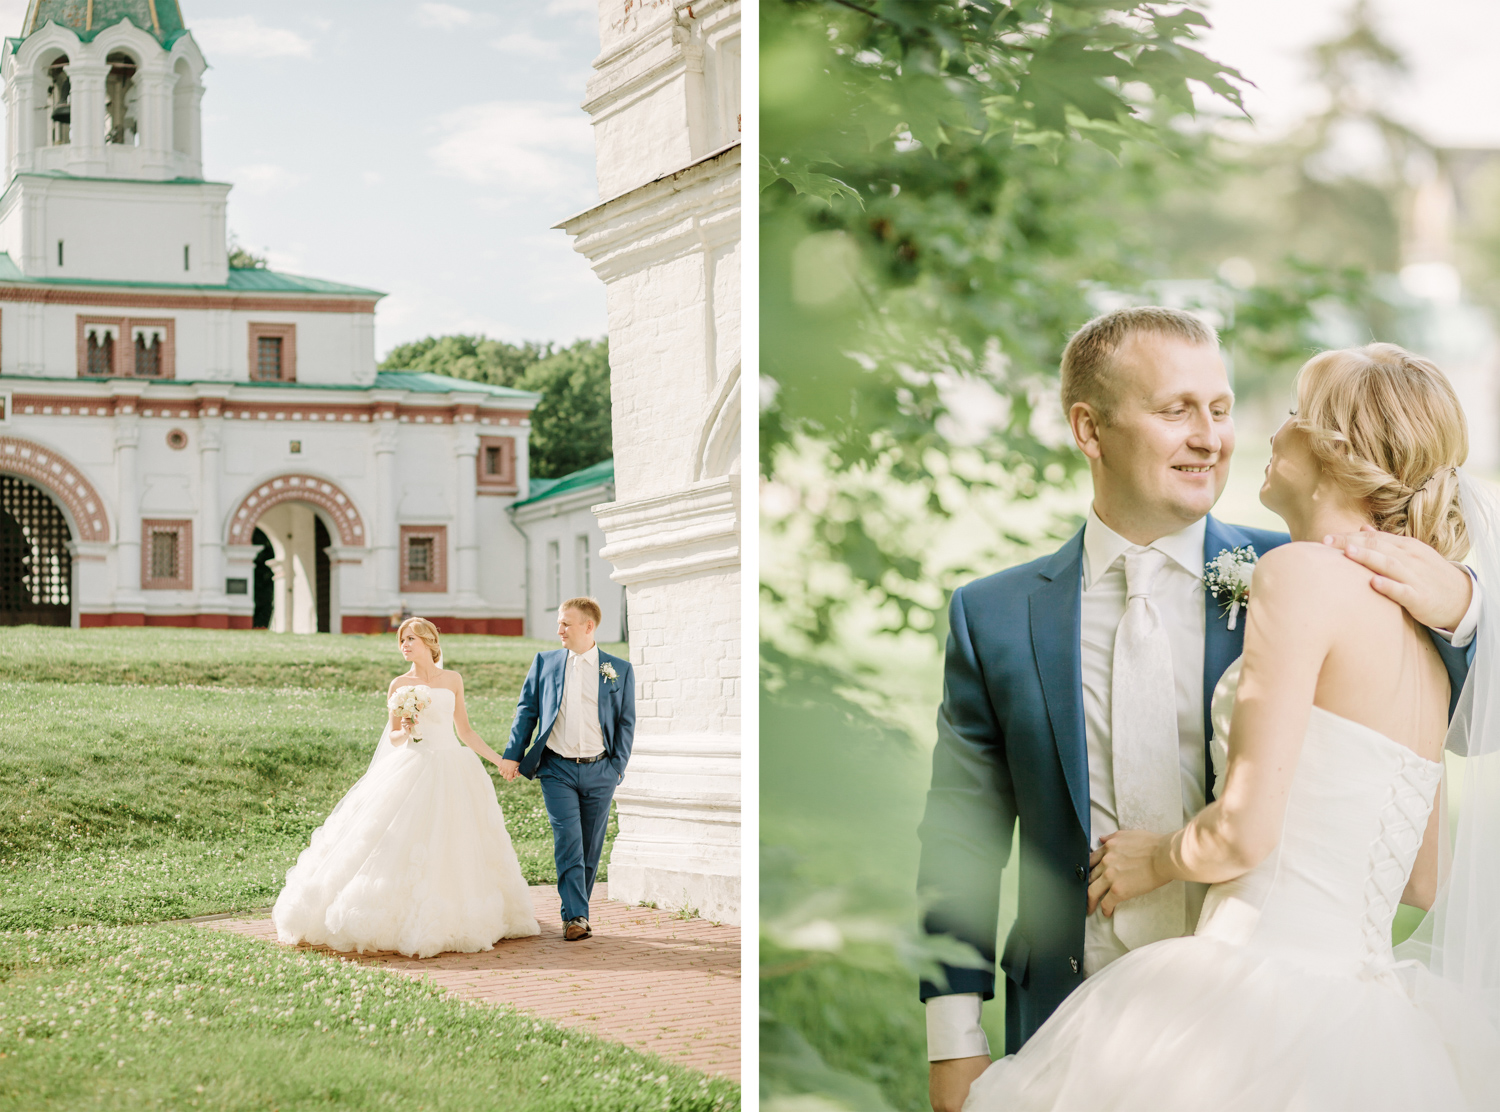 polinastudio.ru_wedding_ji_24